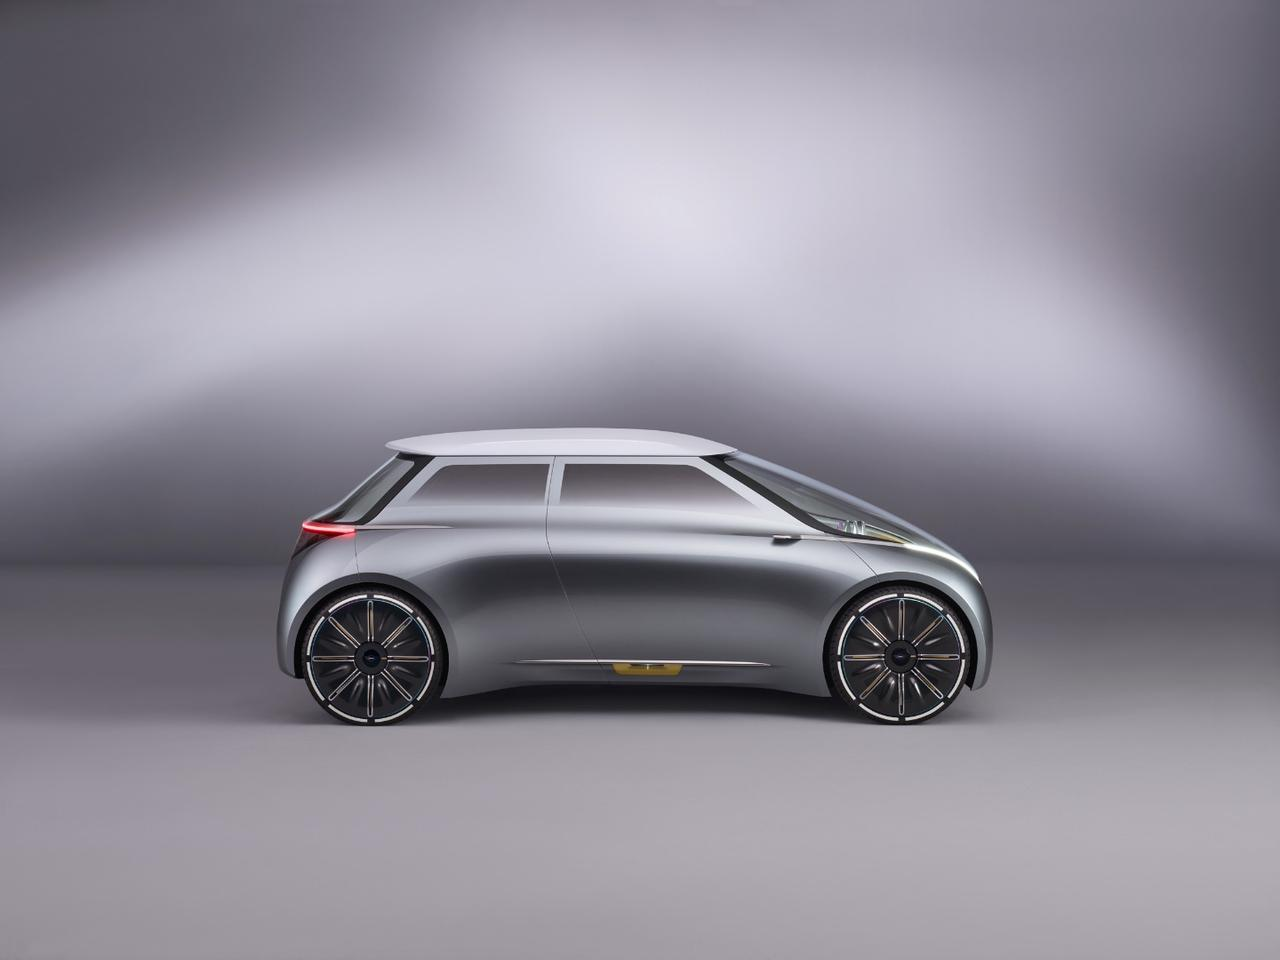 The Mini Vision Next 100 is a city car focused on urban driving and car sharing